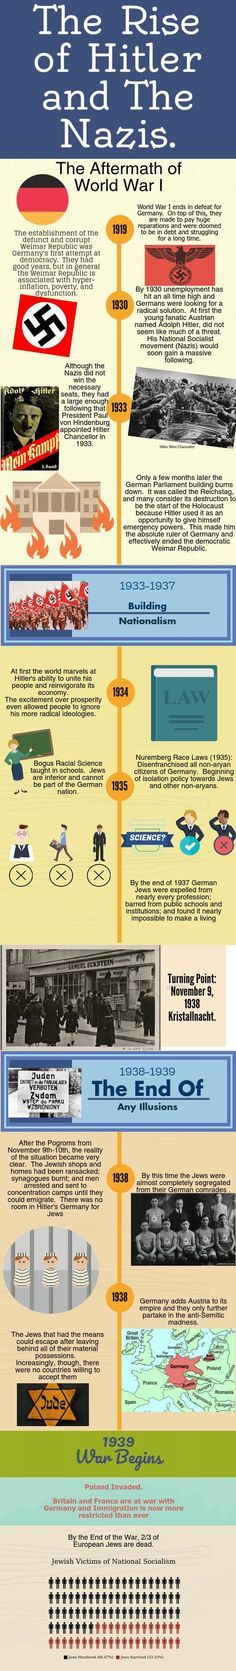 The Holocaust: Beginnings. | @Piktochart Infographic